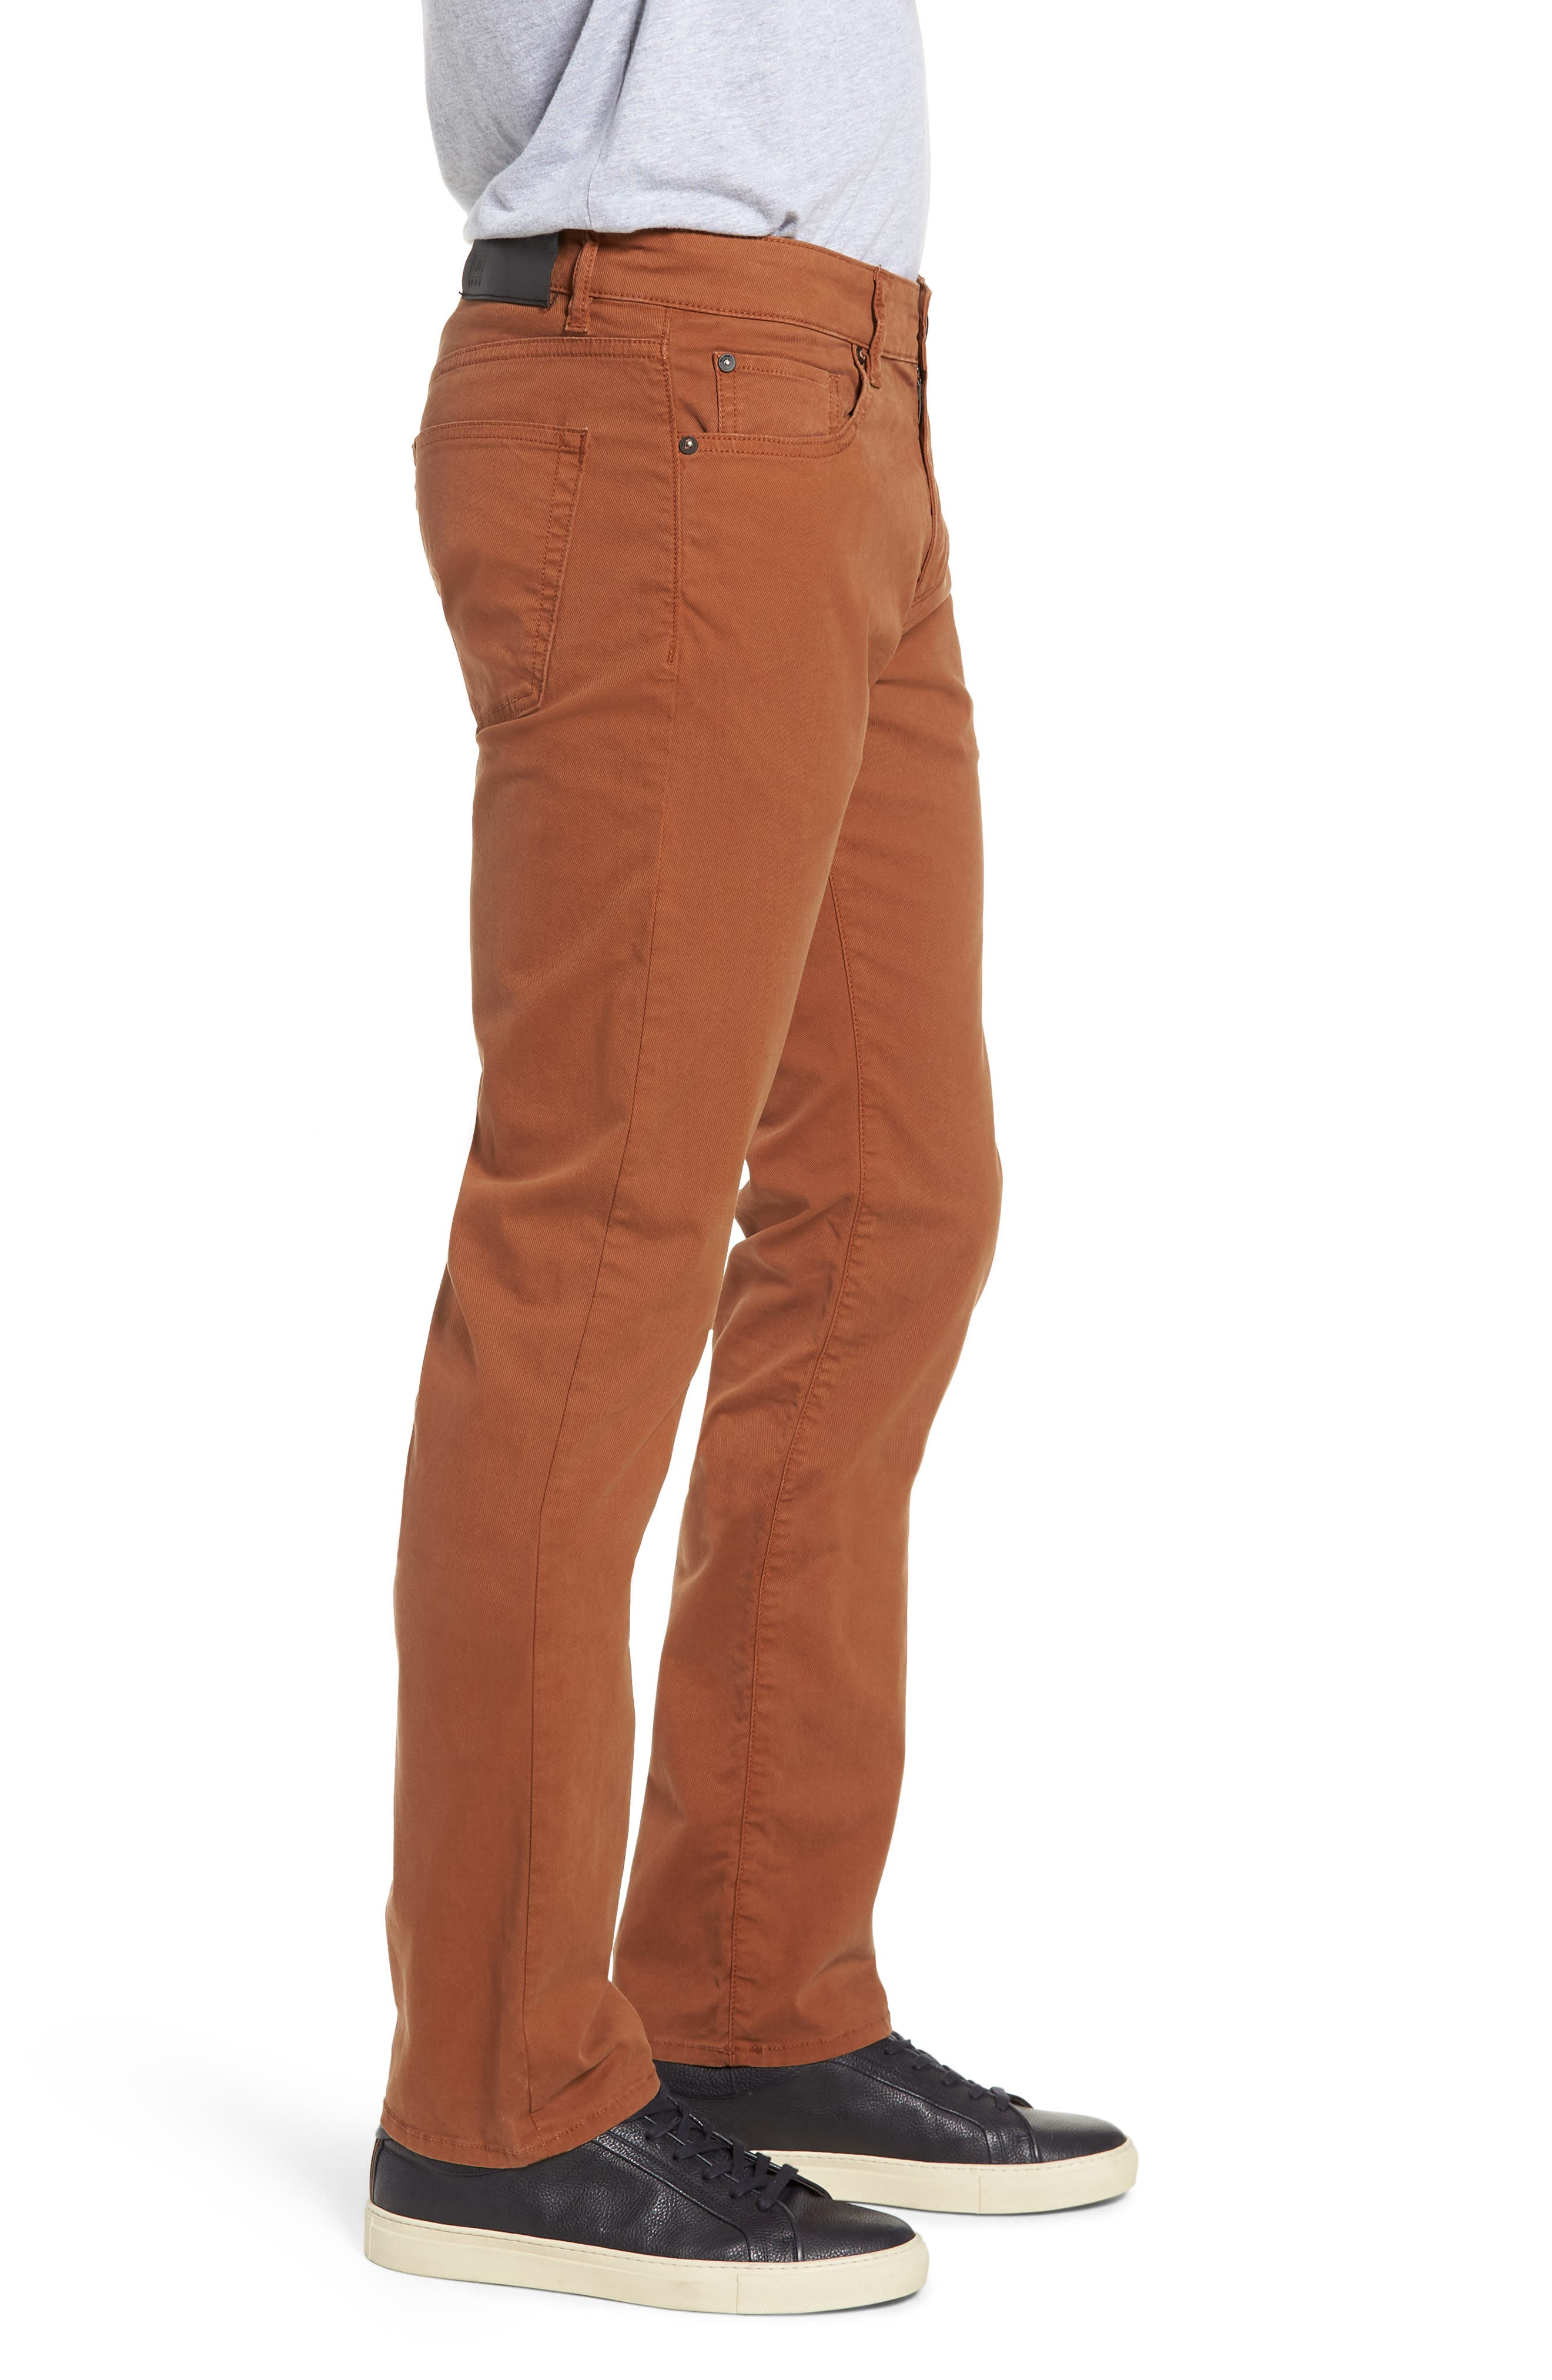 Russell Slim Straight Leg Jeans,                             Alternate thumbnail 3, color,                             TERRACOTTA